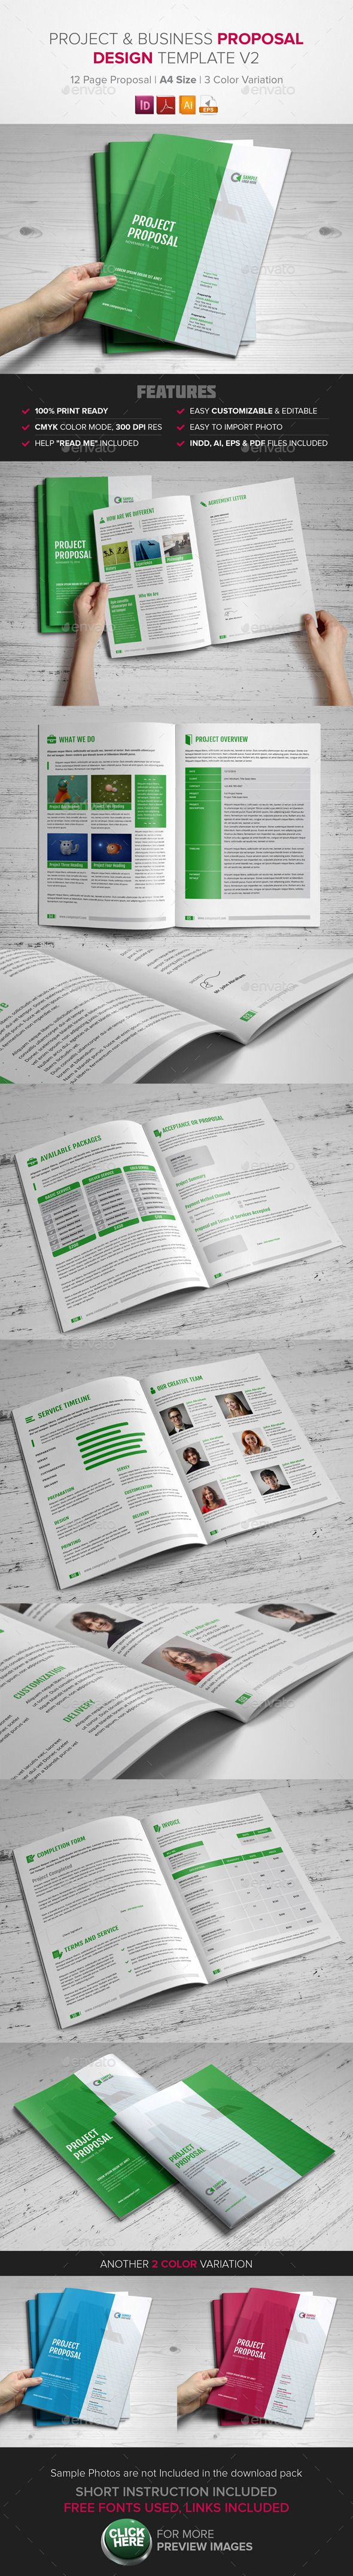 Project u0026 Business Proposal Template v2 120